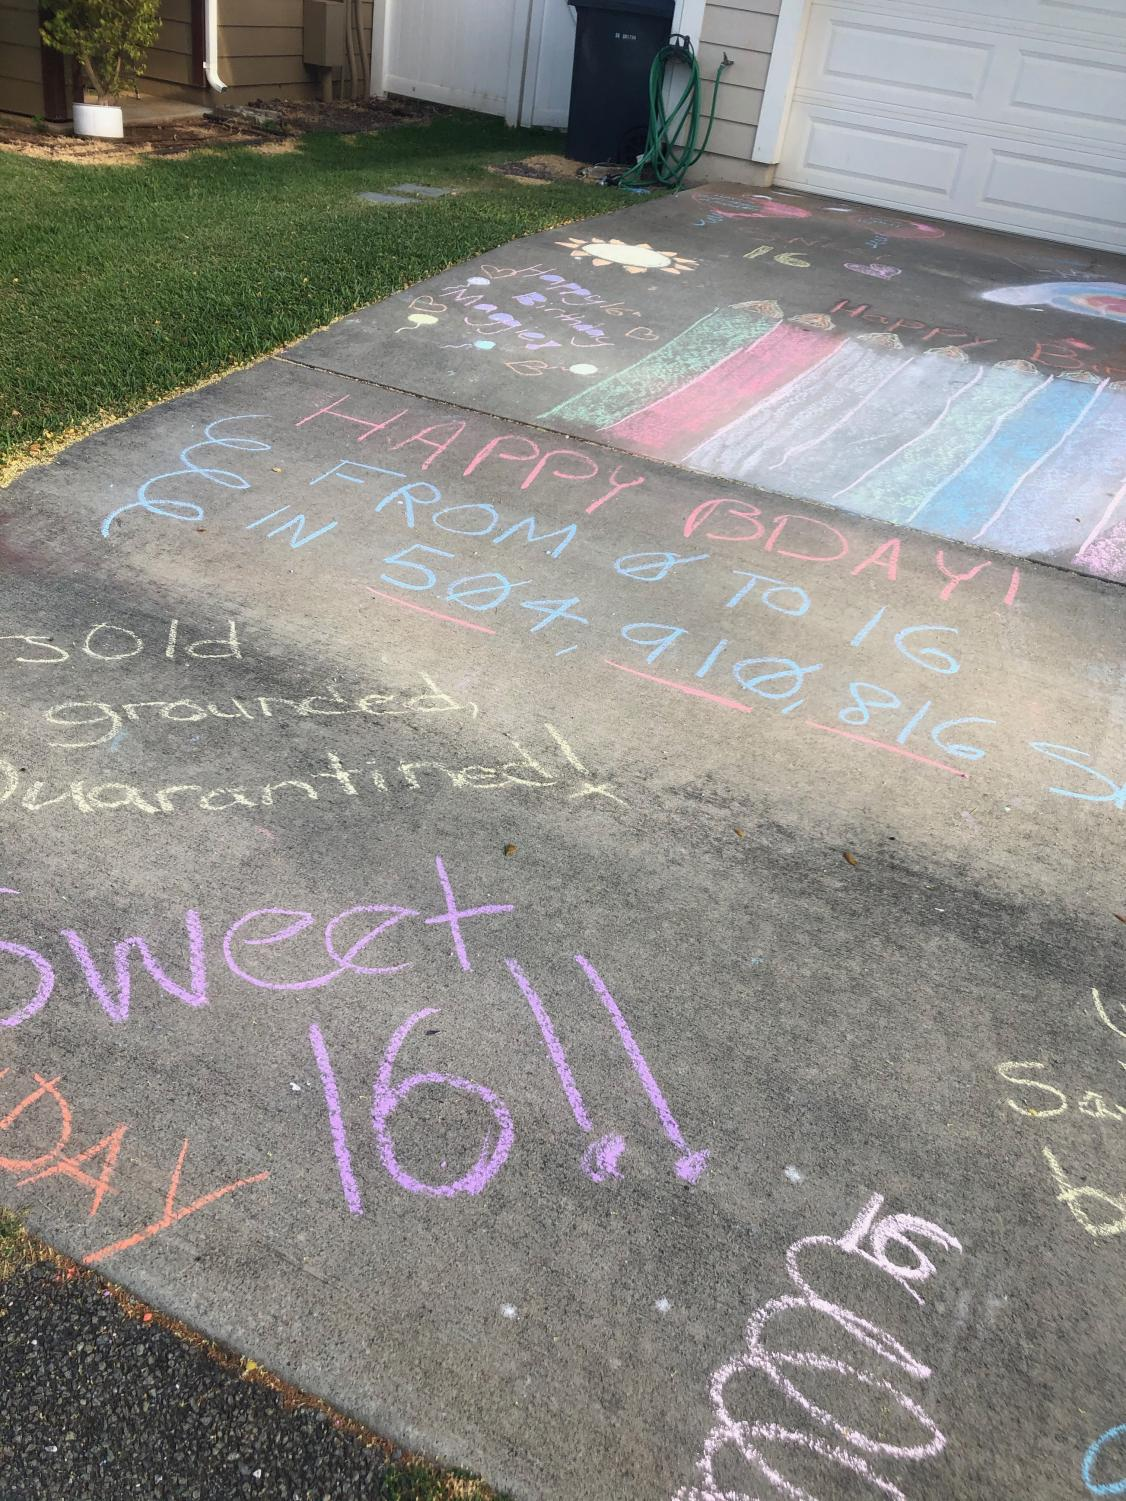 A driveway decorated for a drive-though sweet 16 birthday party. Students have found other ways to celebrate milestone events during the stay at home order.